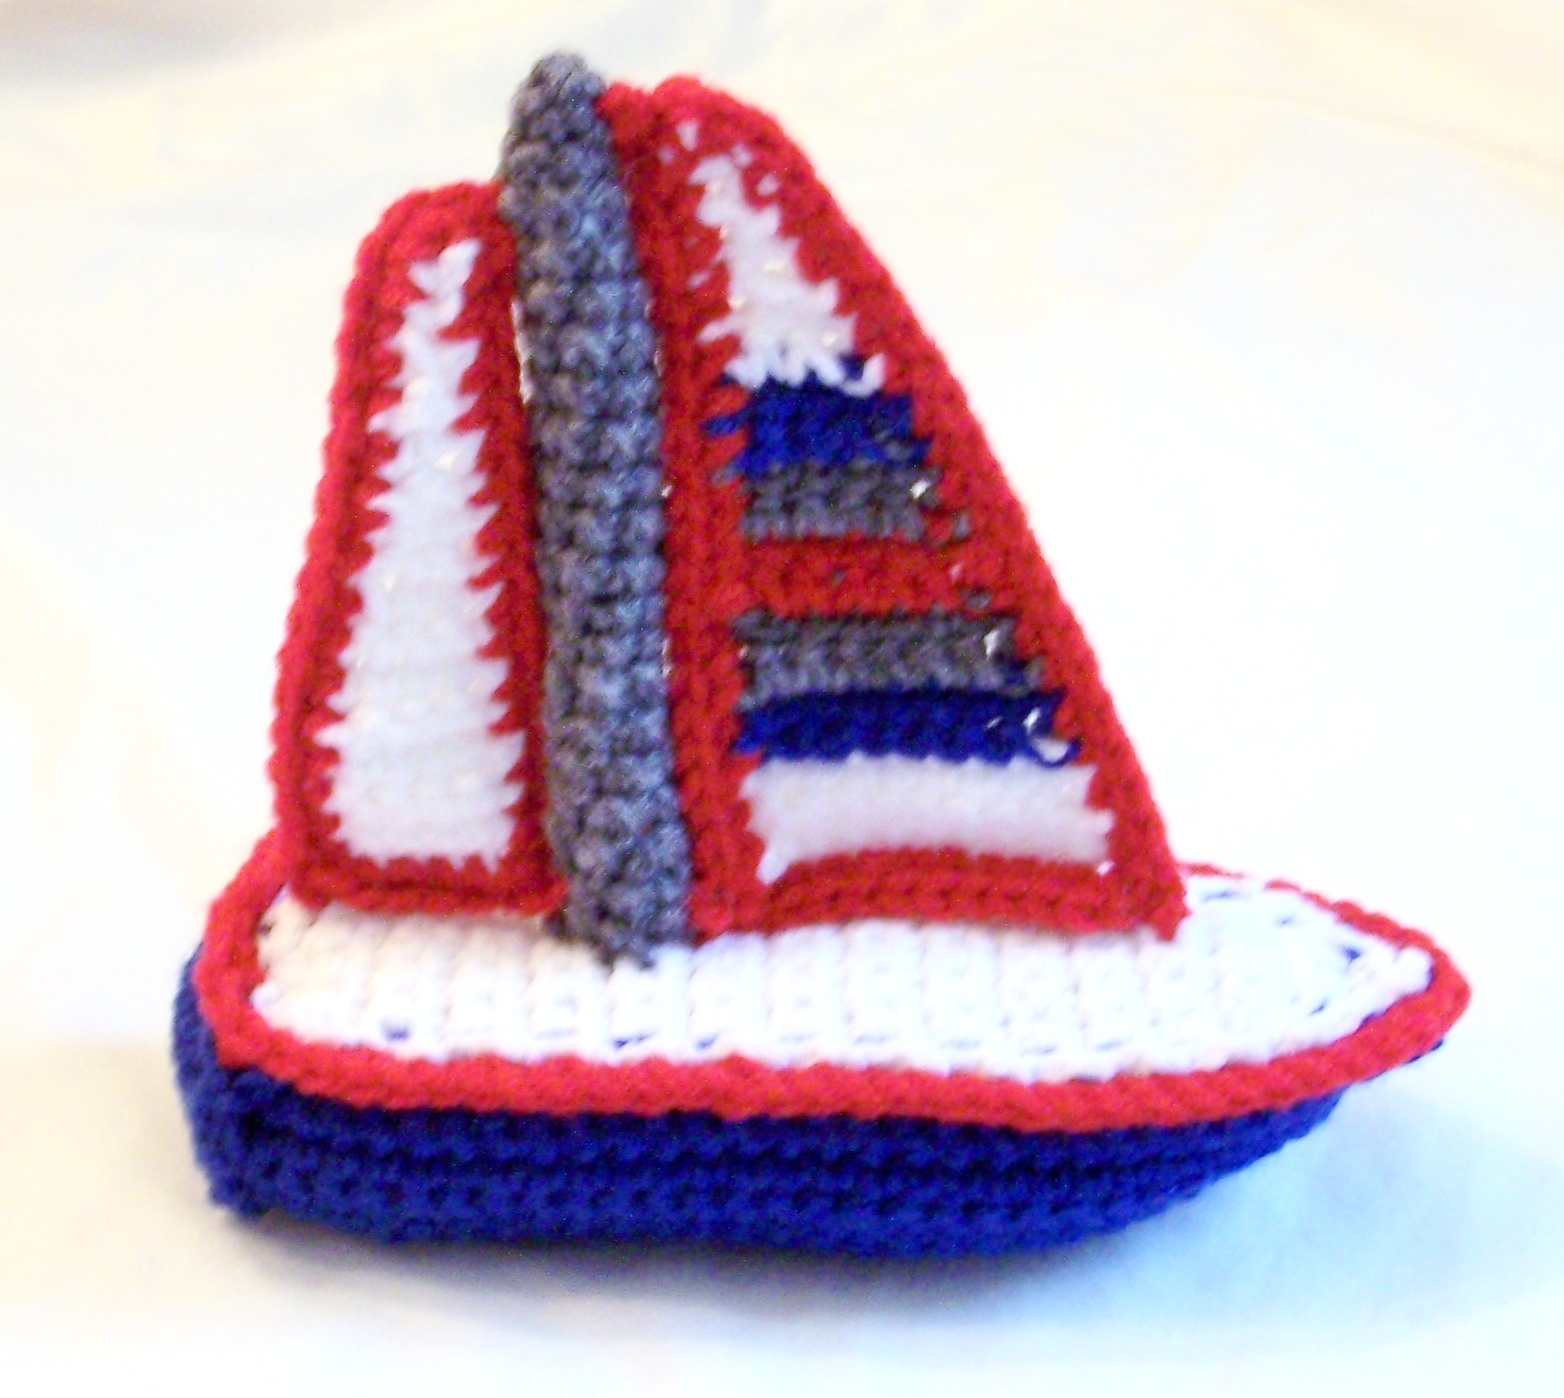 http://www.etsy.com/listing/81997044/sailing-sailing-over-the-bounding ...